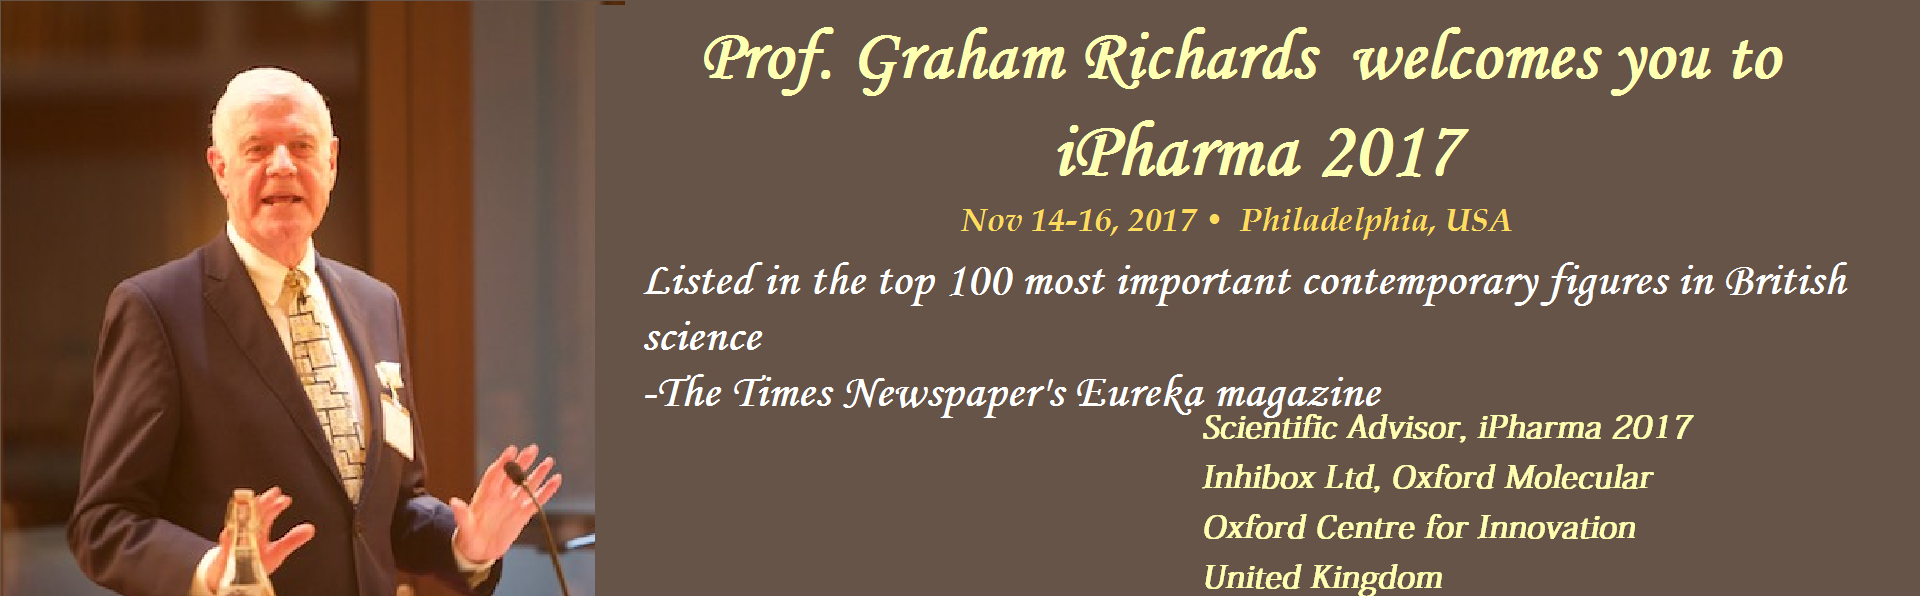 Prof Graham Richards_Scientific Advisor